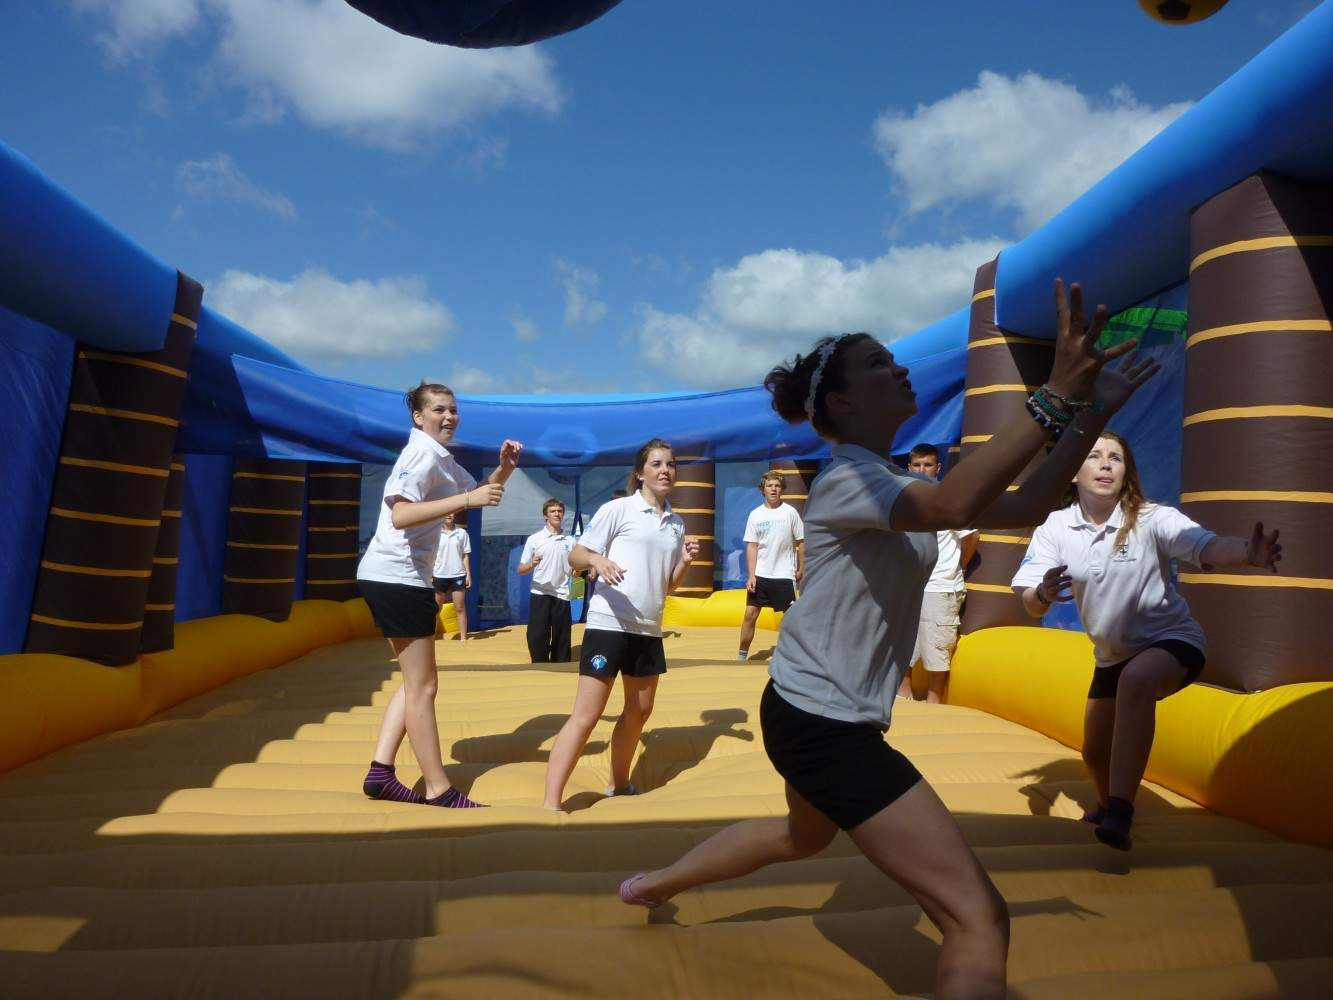 the arena of sports Year-round family friendly soccer for people of all ages & abilities plus cool indoor inflatable funzones, awesome camps, & rockin' birthday parties.